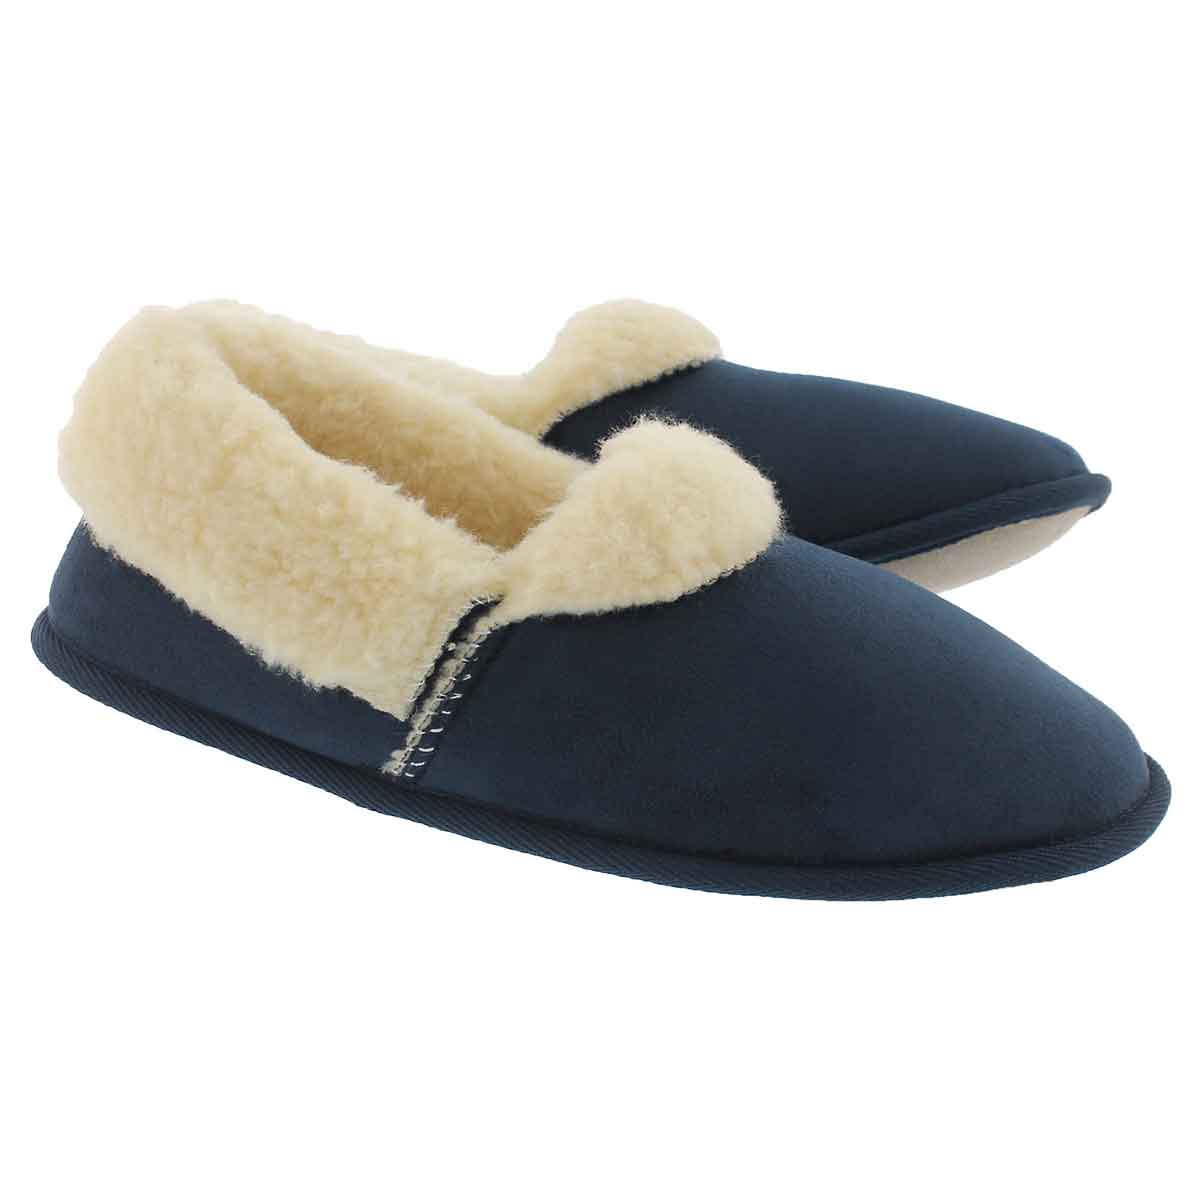 Mns Flapjack navy closed back slipper